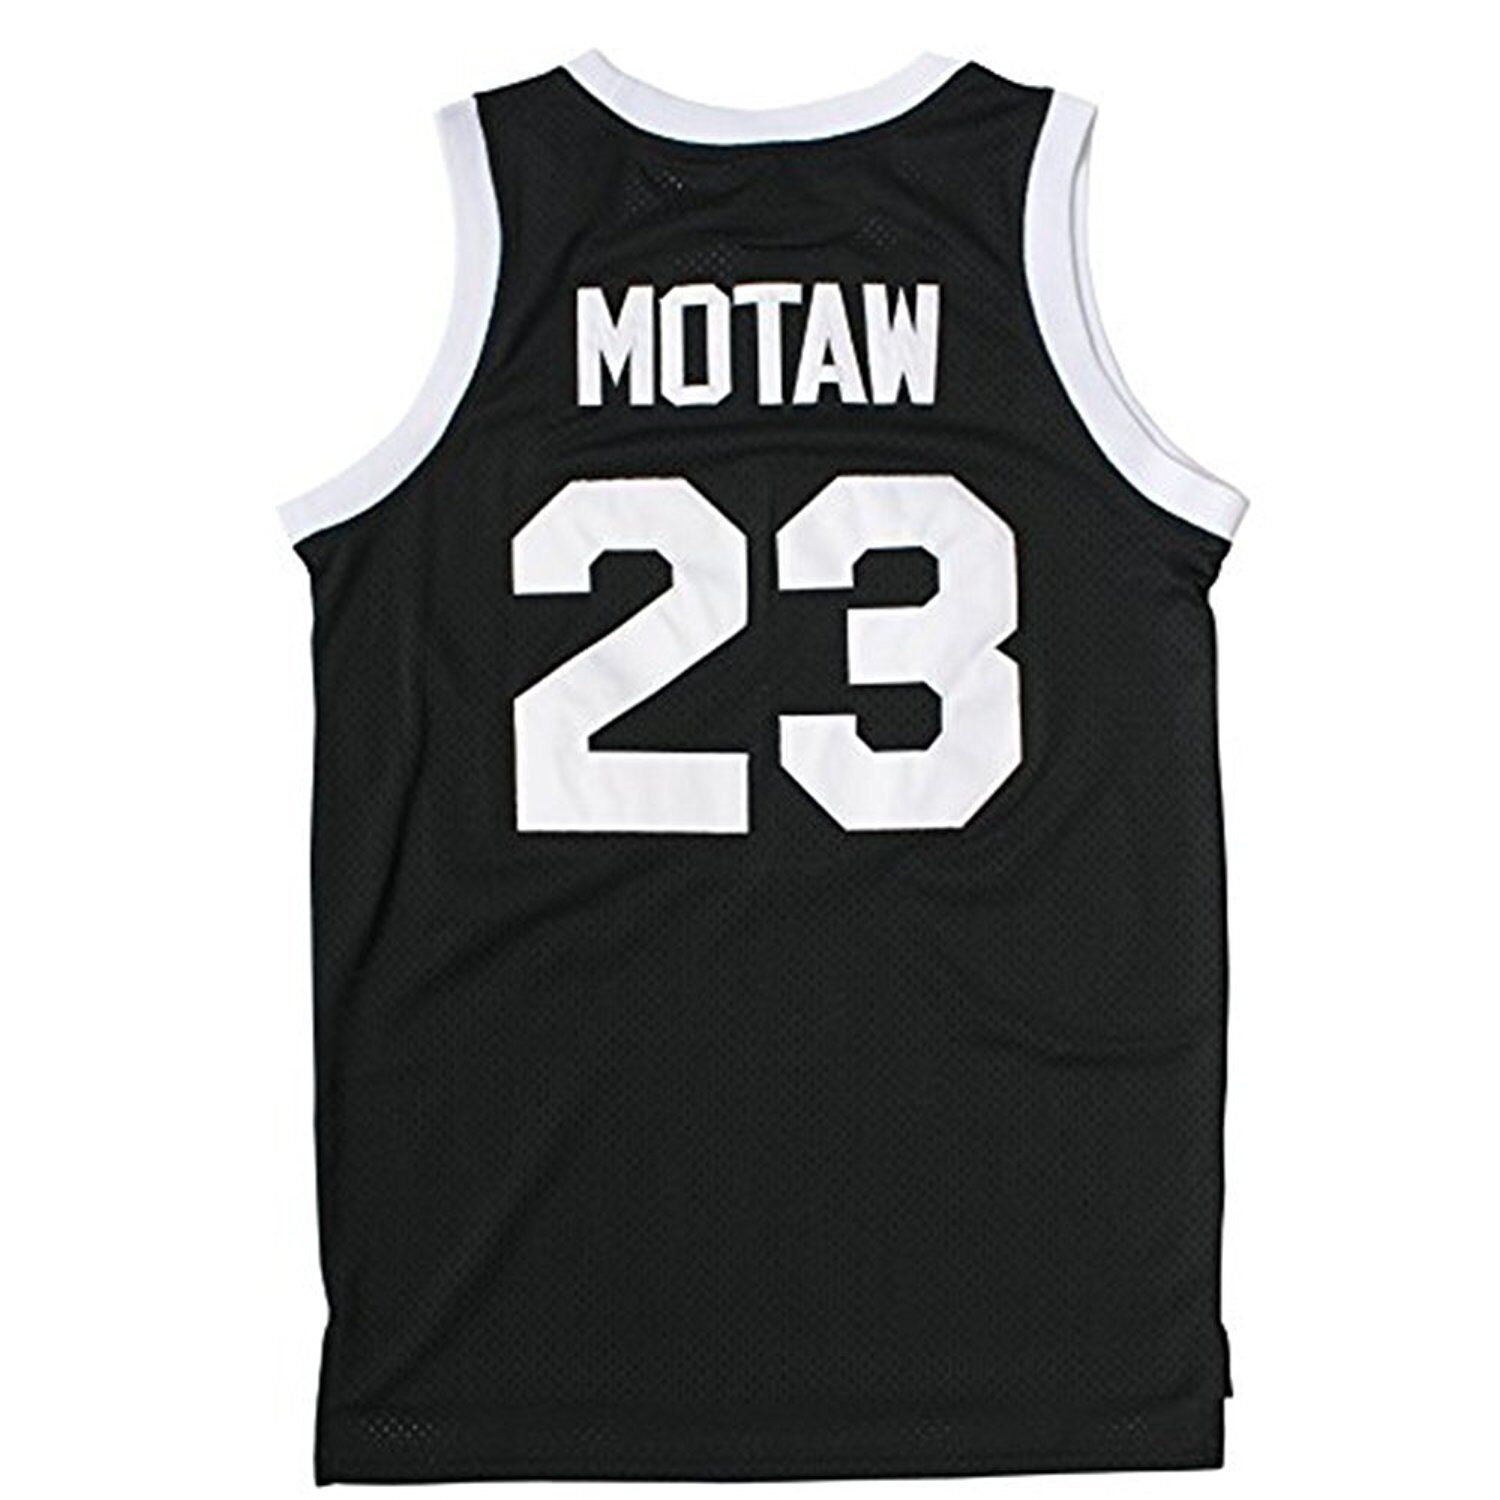 Shoot Out Tournament Basketball Jersey #23 #96 Motaw Above The Rim Stitched Tops